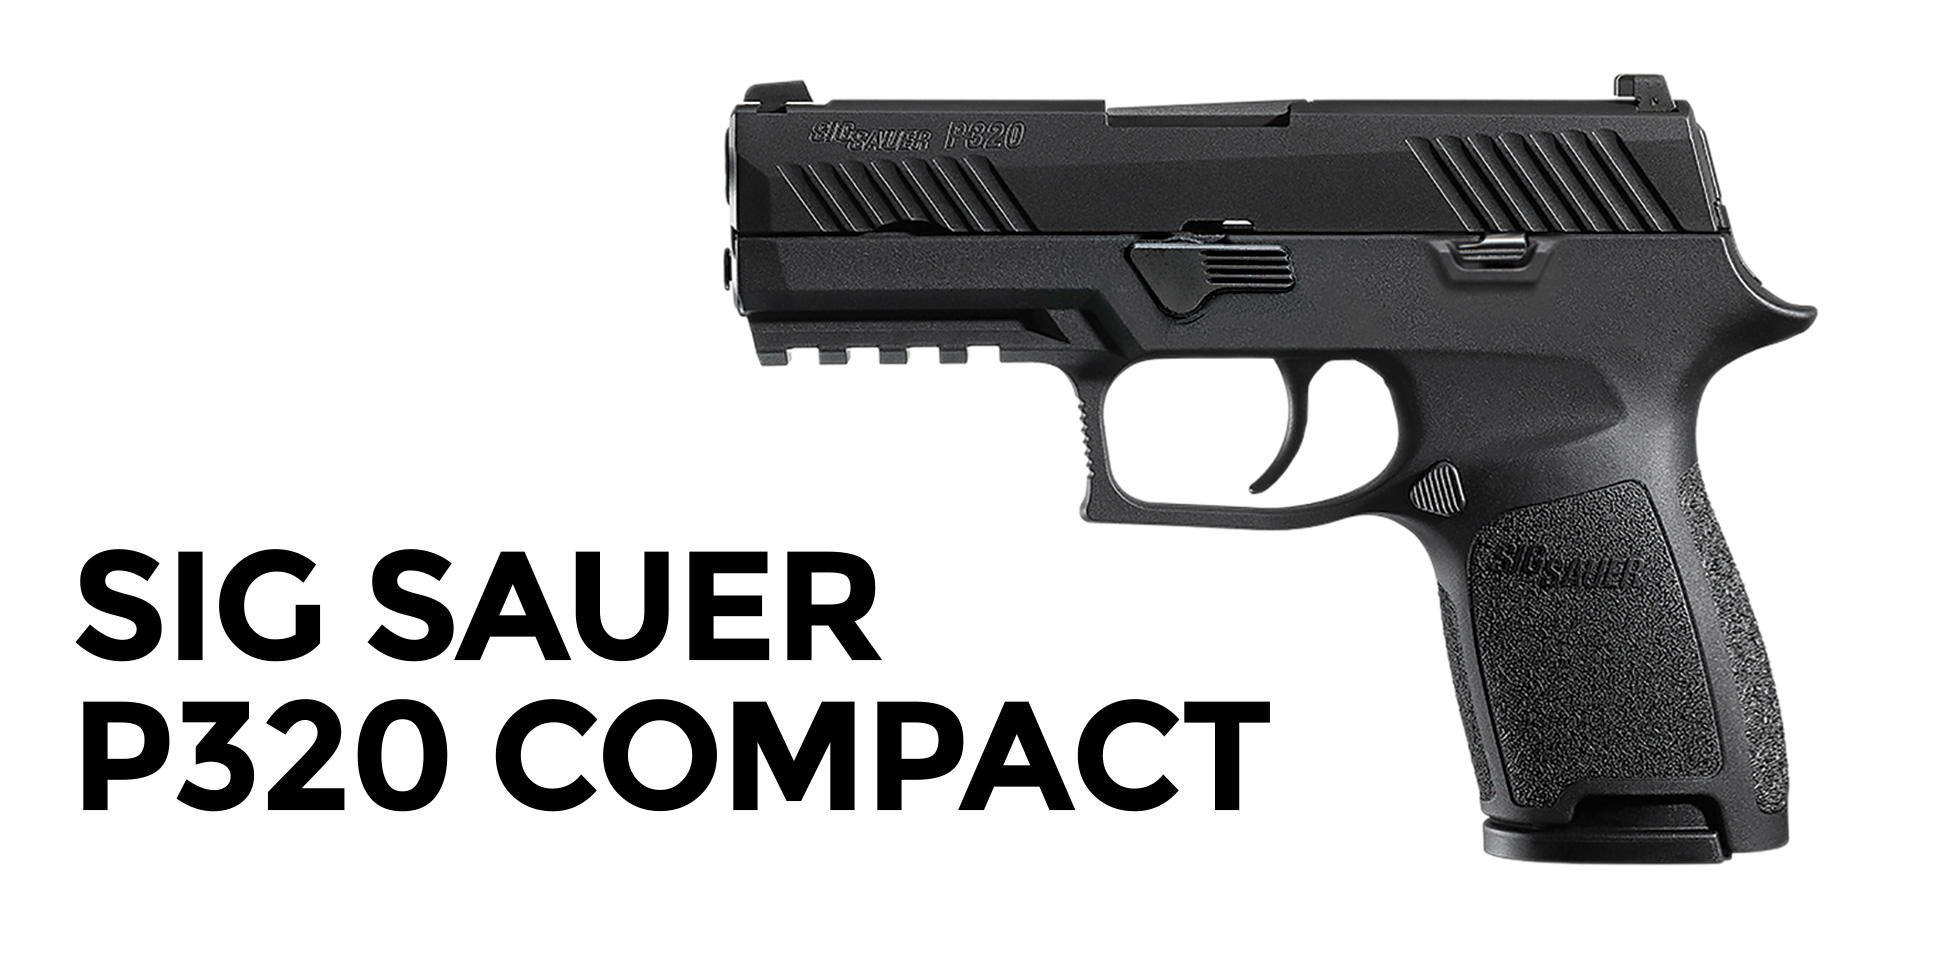 awesome pistol for the price - the Sig Sauer P320 Compact